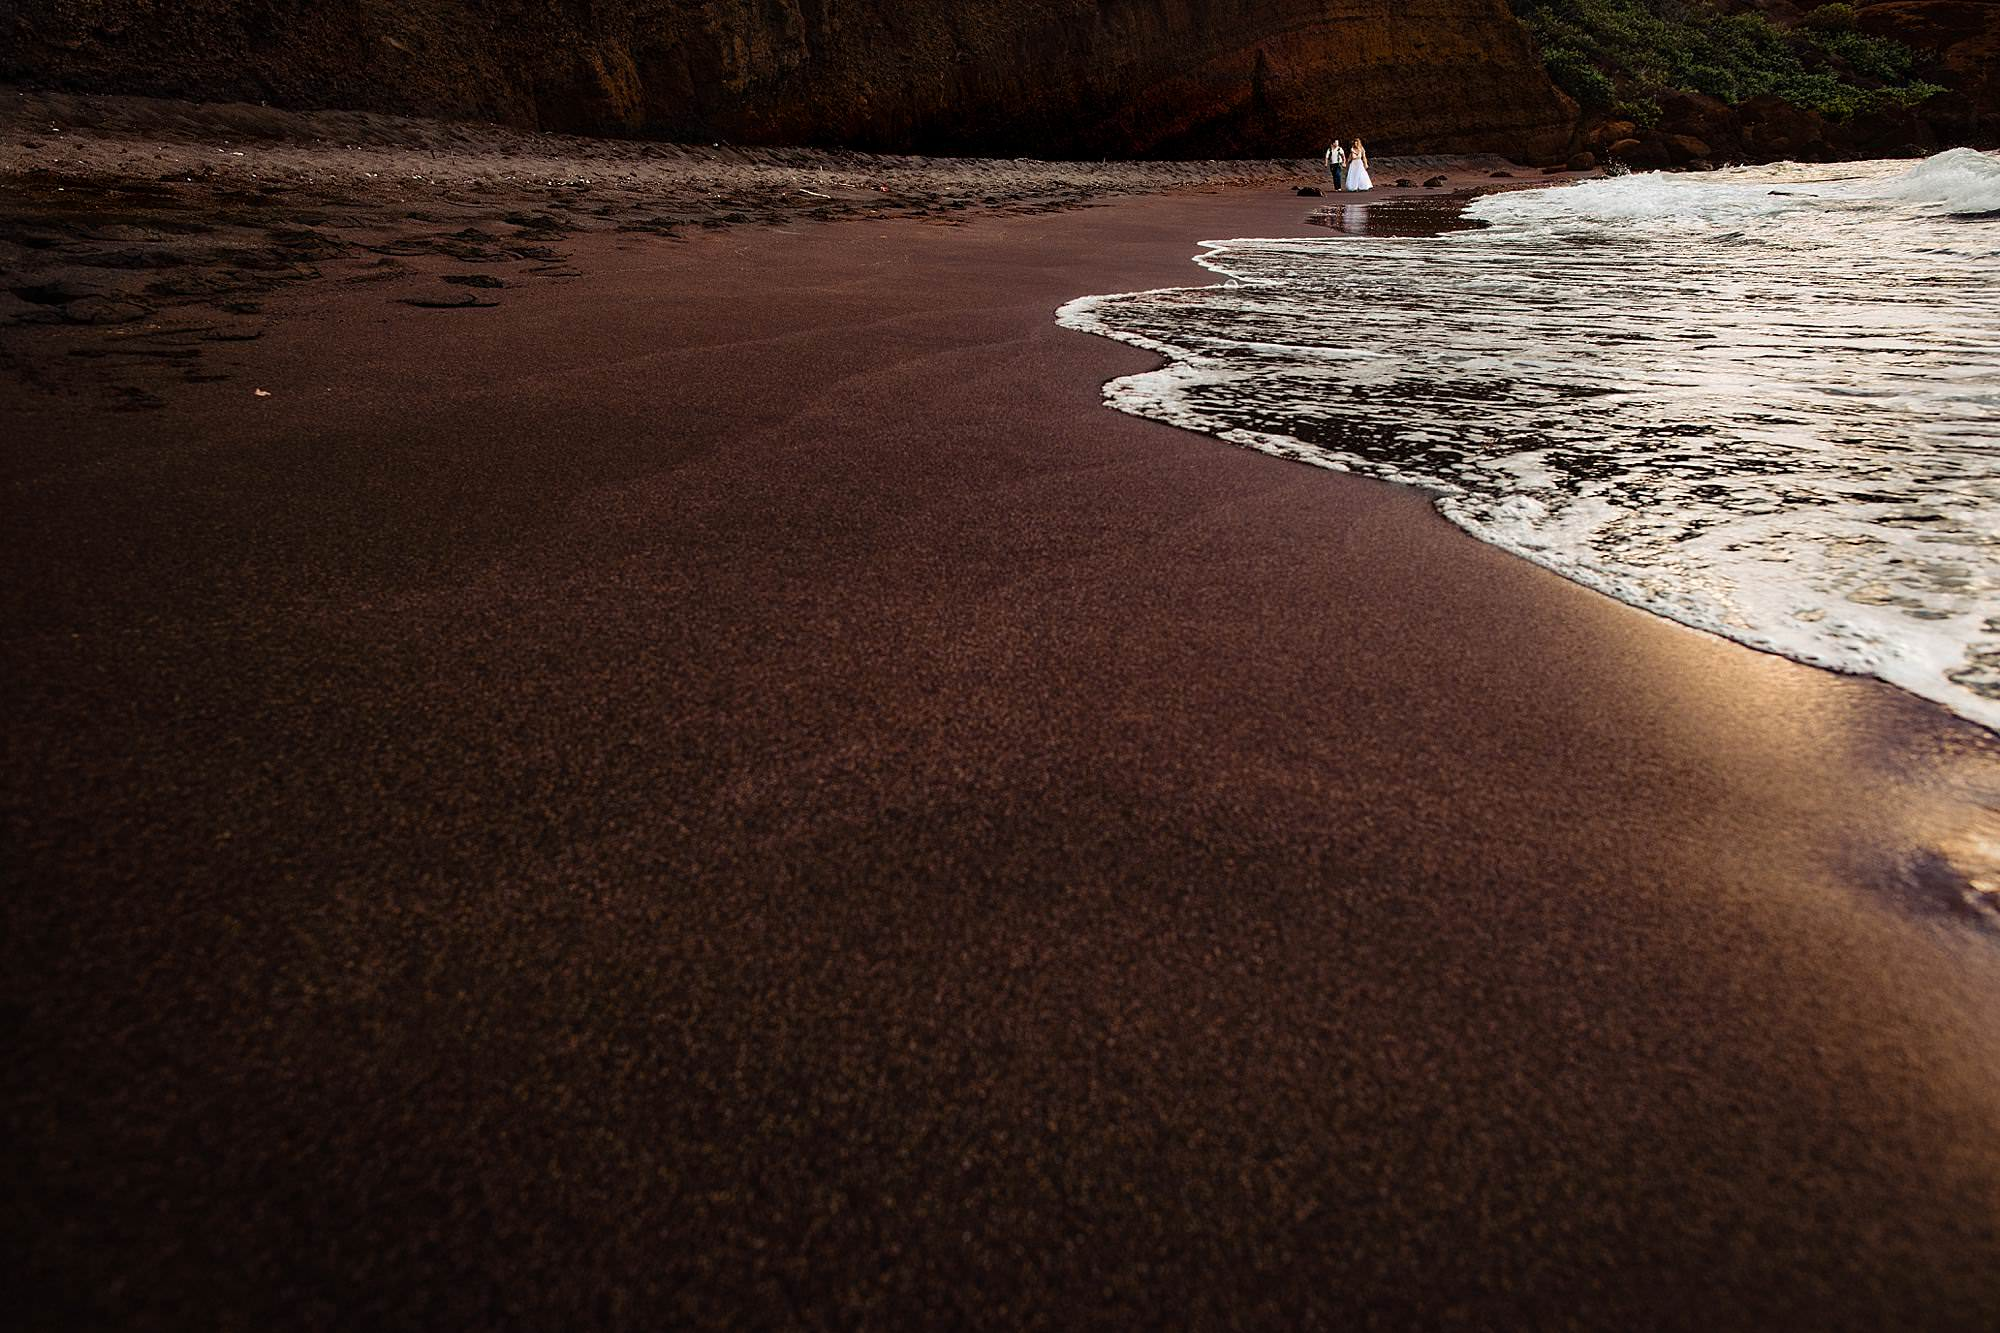 Couple walk at surfs edge - photo by Angela Nelson Photography